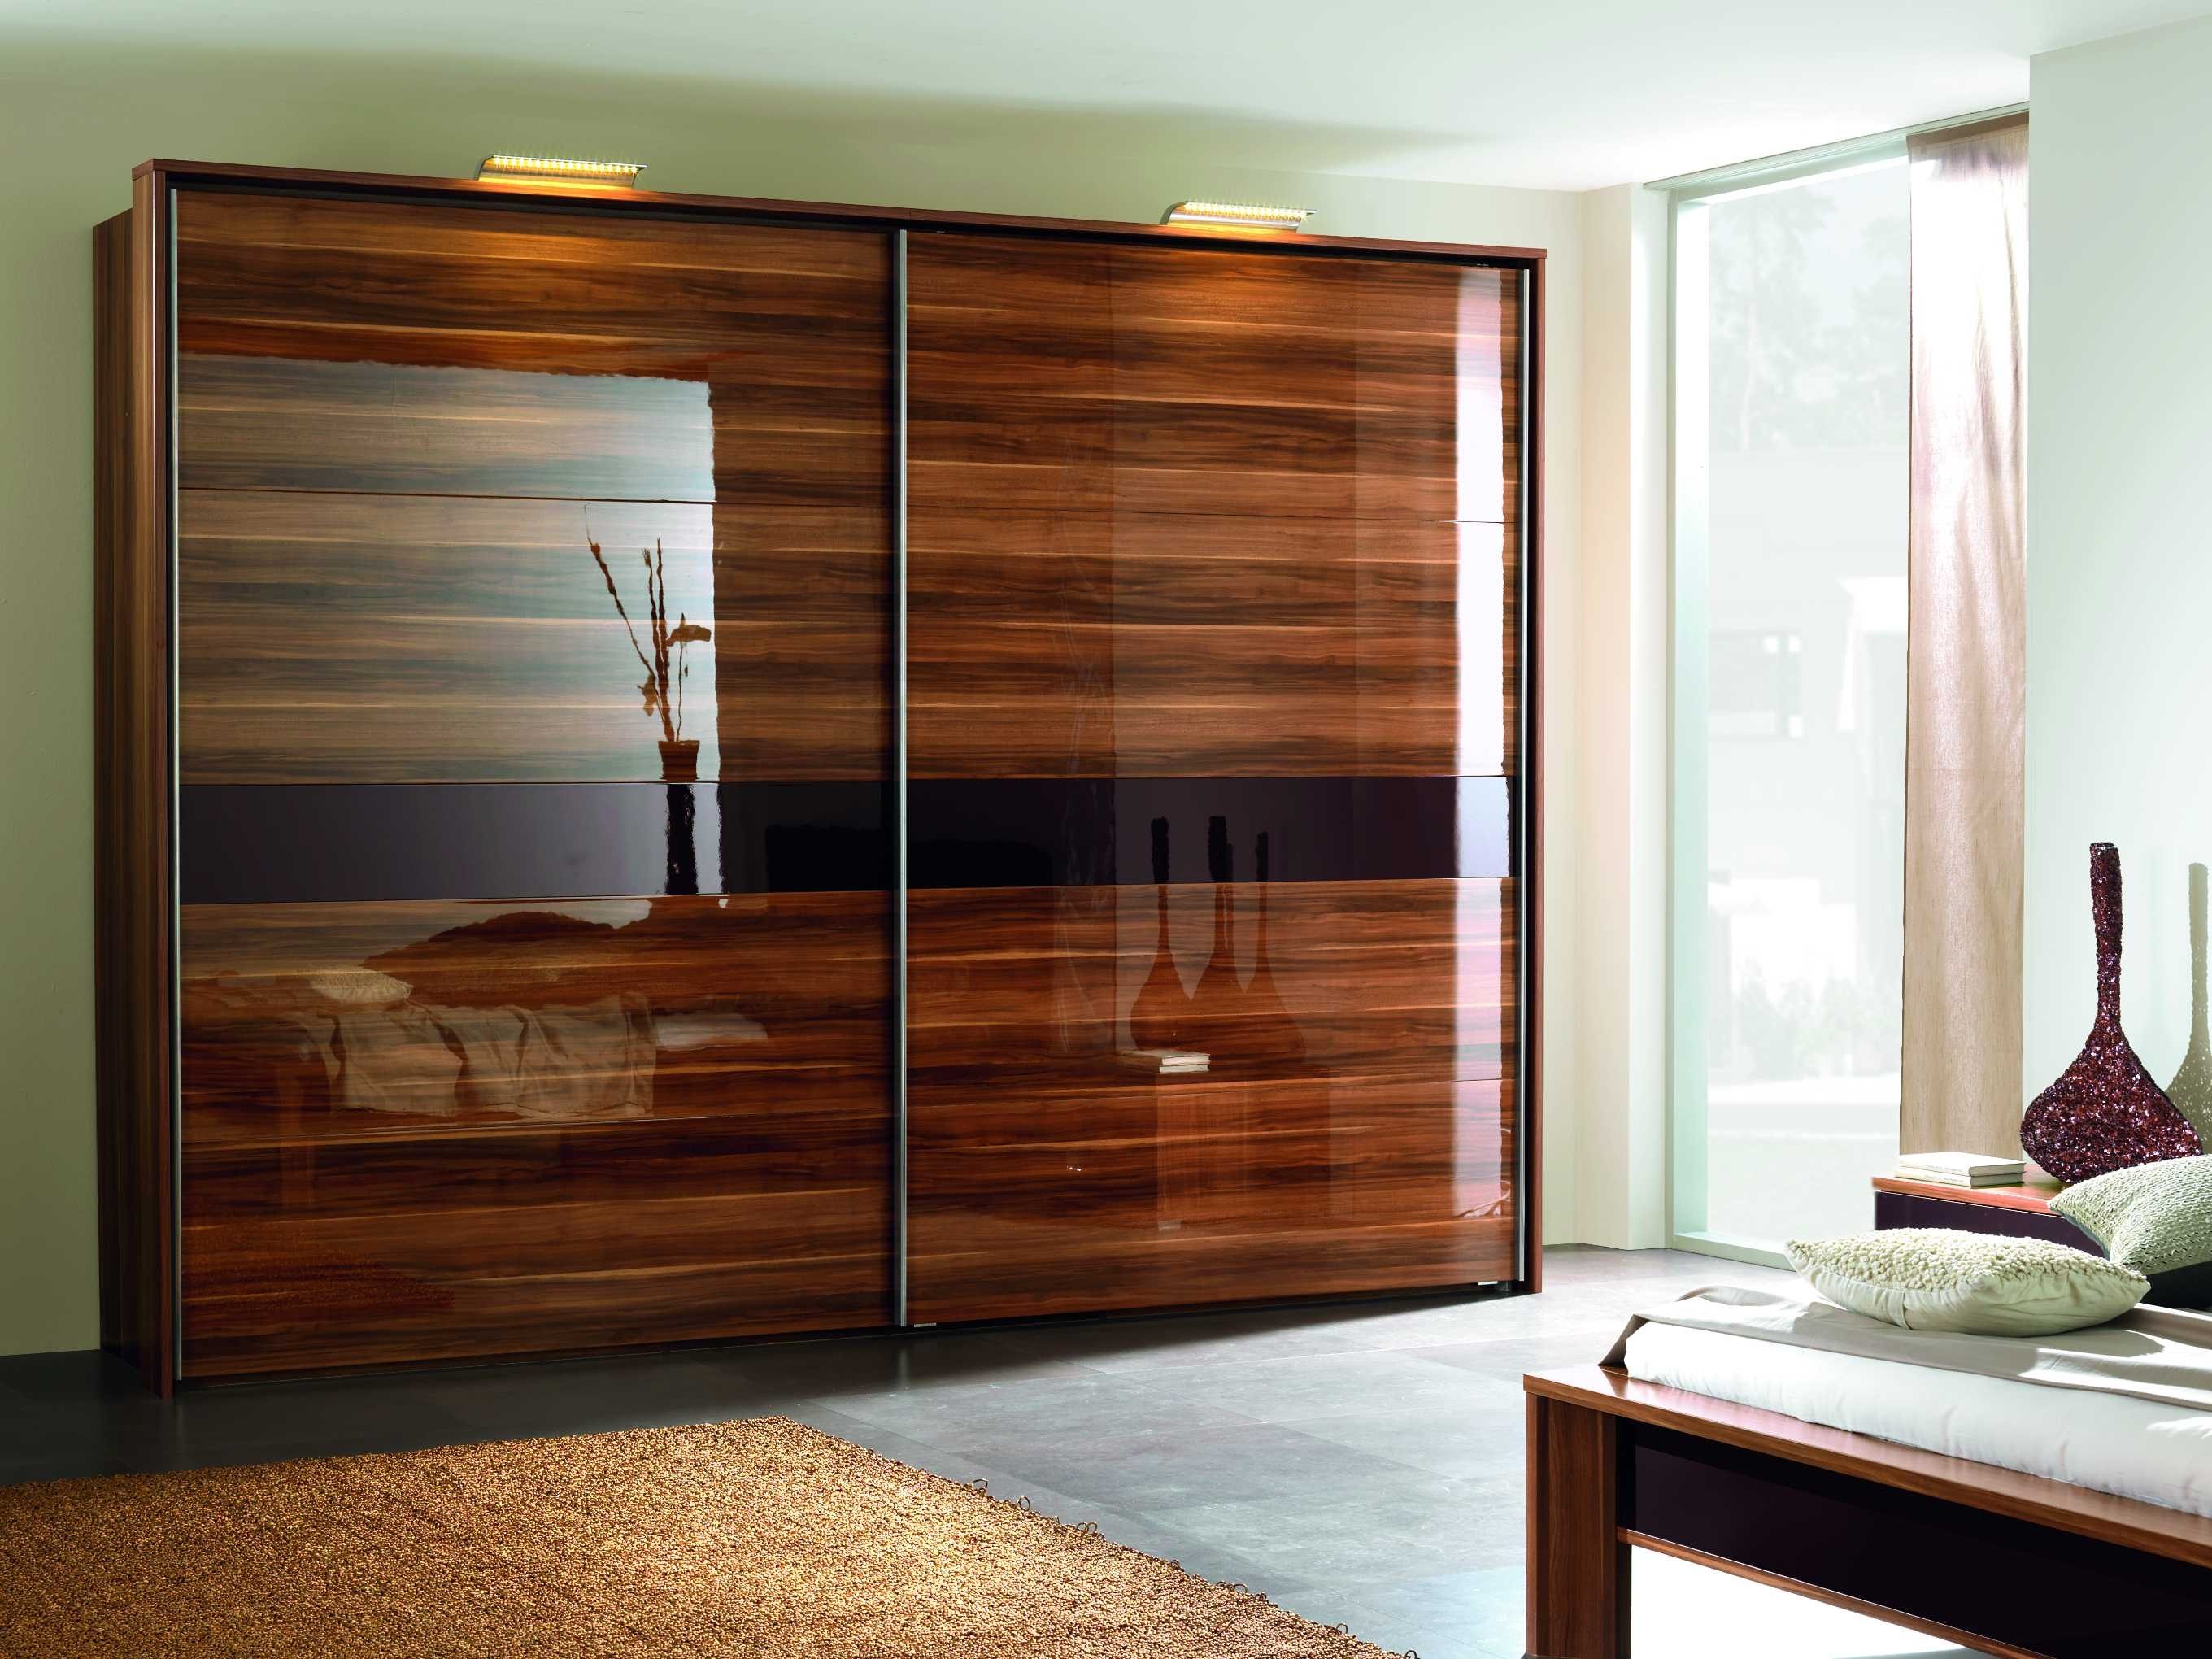 Sliding Door Wardrobes Sliding Wardrobes London Regarding Sliding Door Wardrobes (Image 18 of 25)